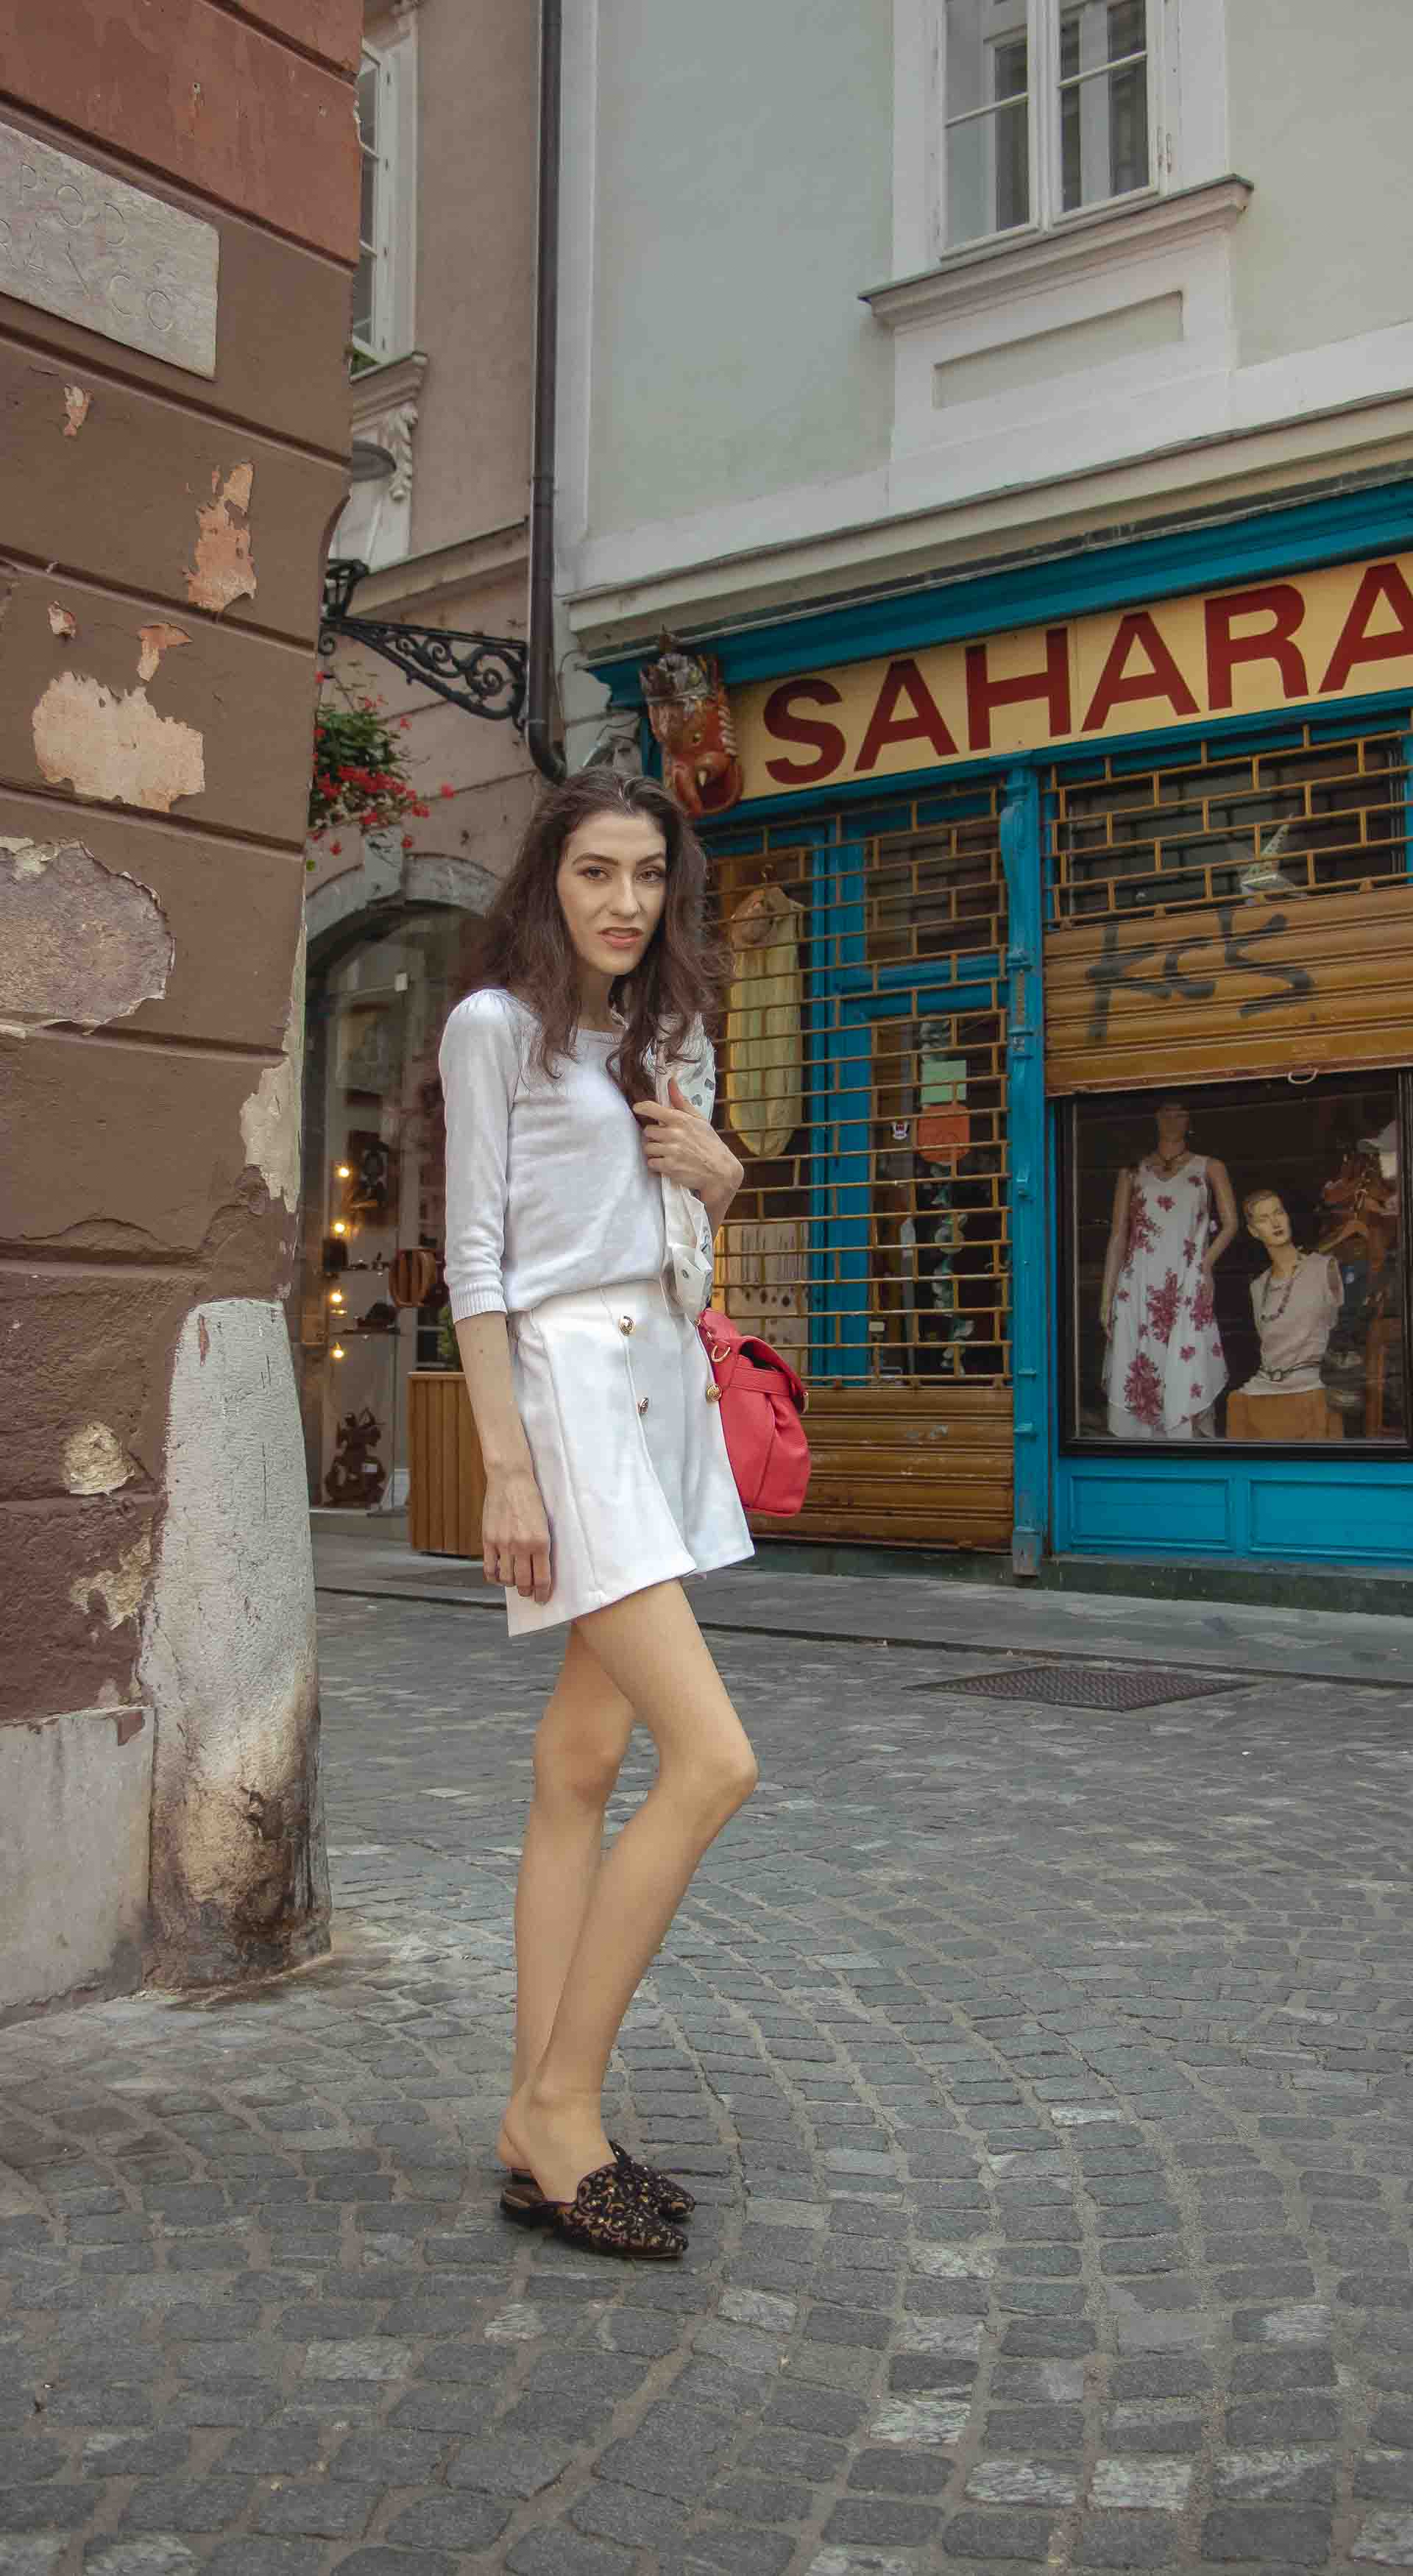 Beautiful Slovenian Fashion Blogger Veronika Lipar of Brunette from Wall dressed in all in white outfit, a white sweater, white tailored shorts, black flat slipper mules, pink top handle bag, a paper bag on the street in Ljubljana during heatwave